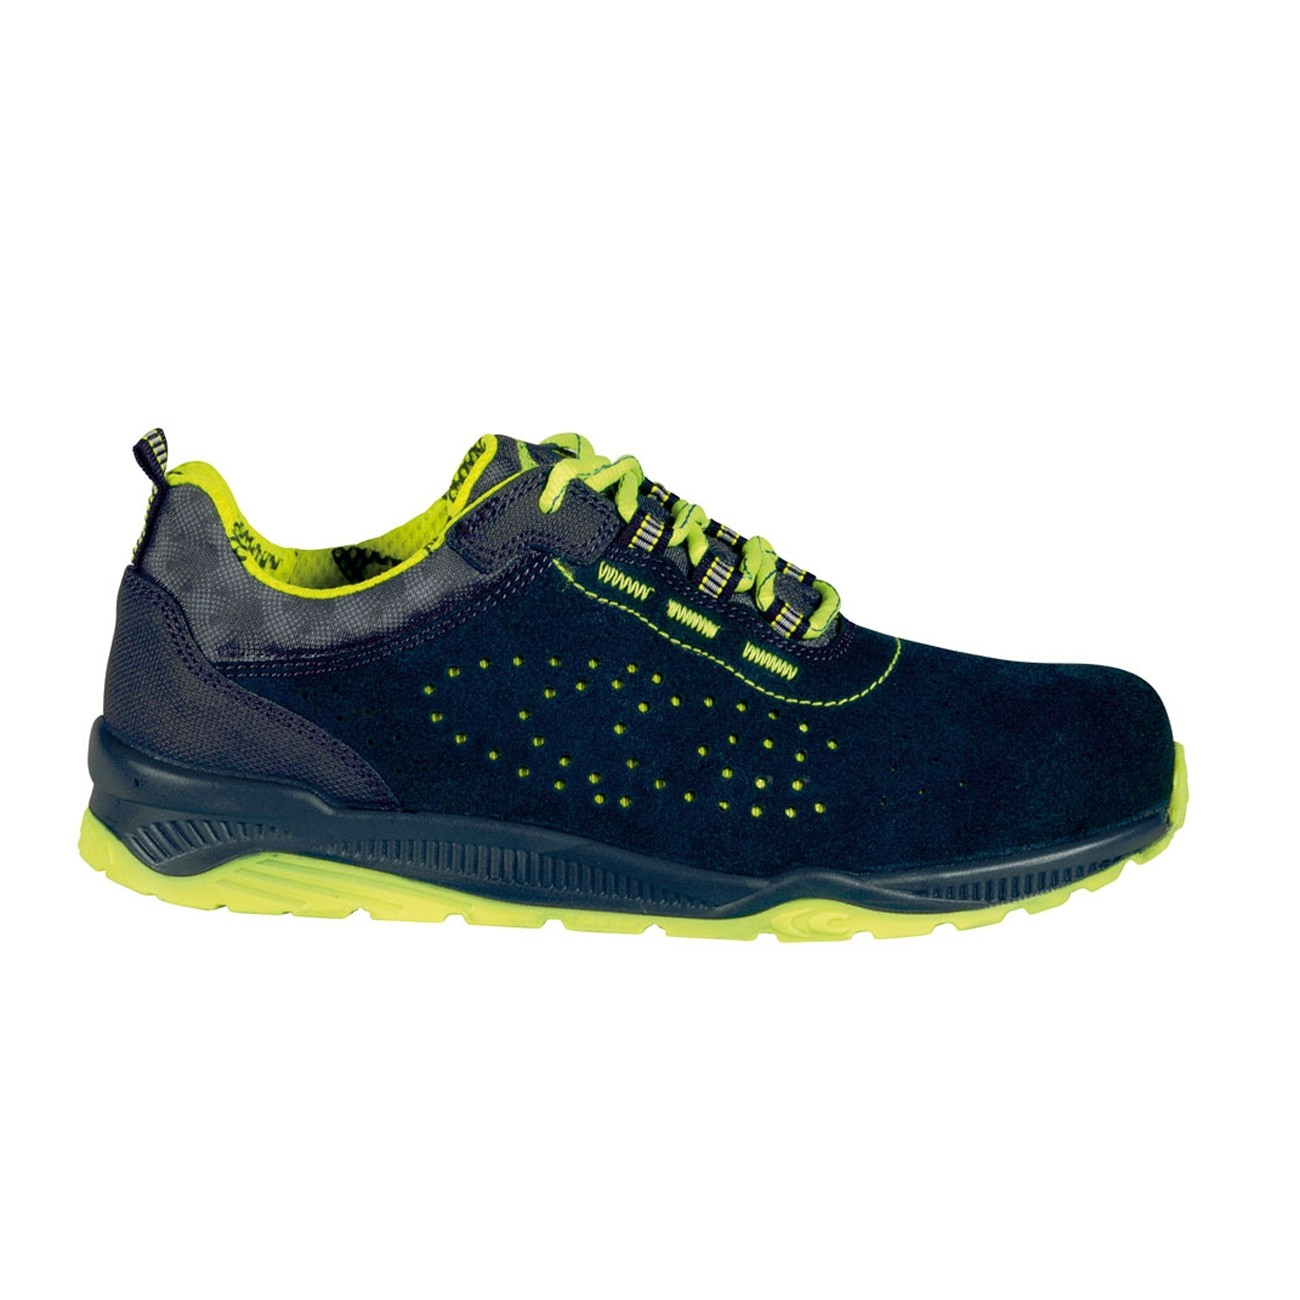 new products baaae f8cf1 Scarpe antinfortunistiche Cofra Promotion S1P SRC